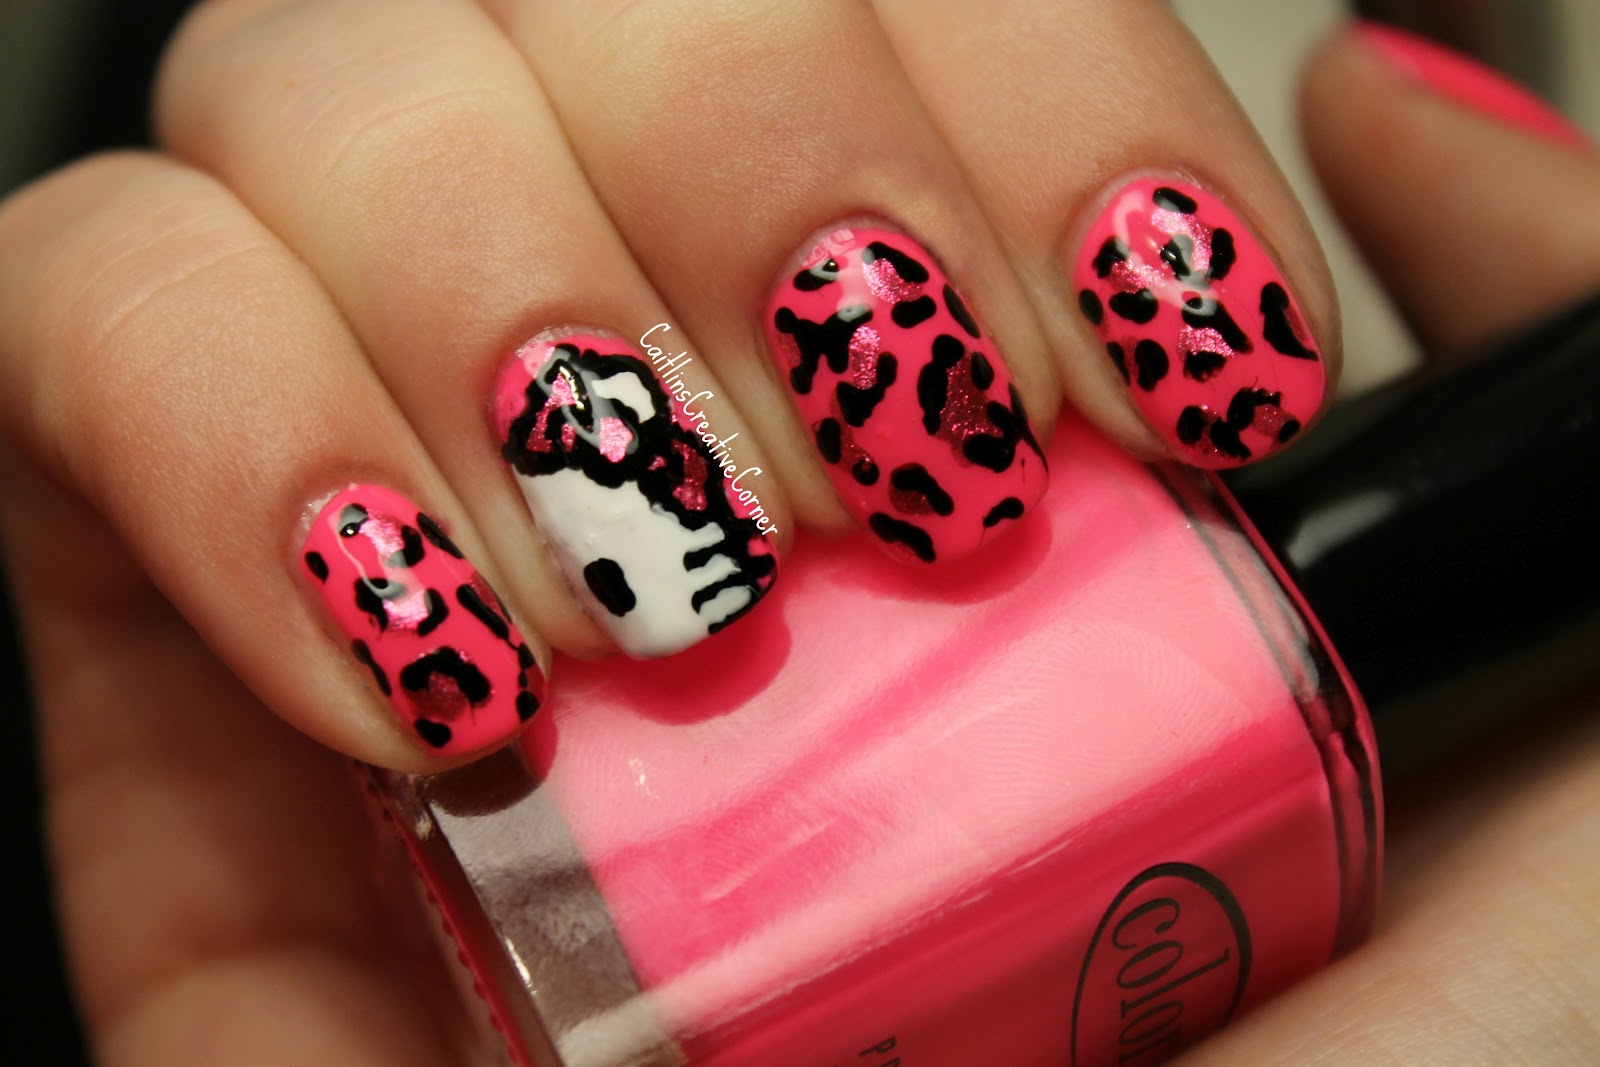 Nails Designs With Bows Hello Kitty Hello kitty nail art